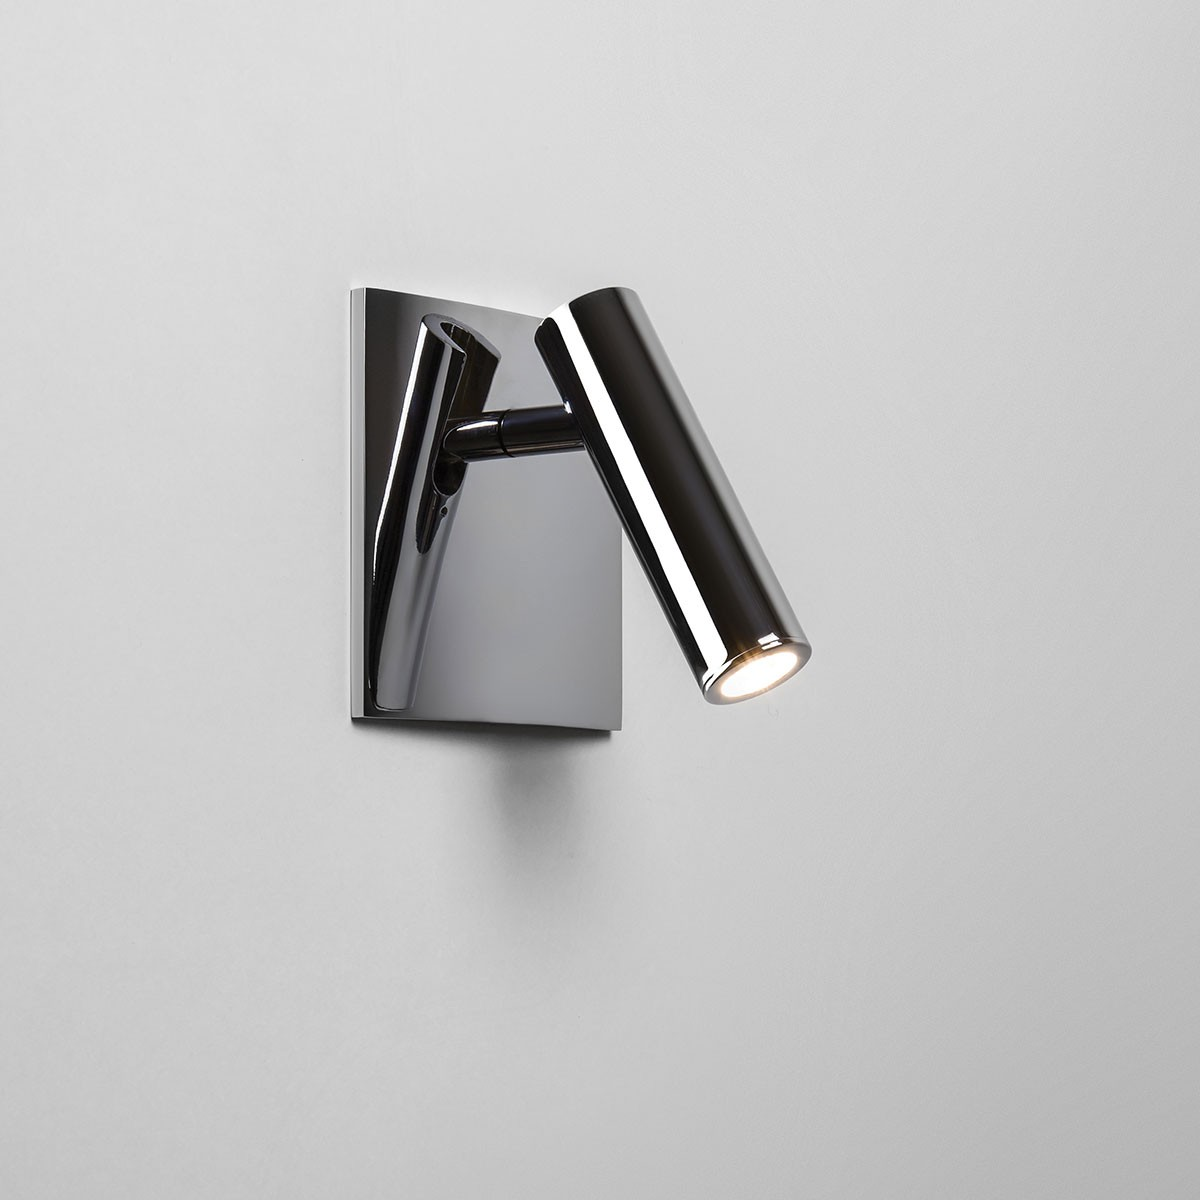 Square Chrome Wall Lights : Astro Enna Square Unswitched Polished Chrome LED Wall Light at UK Electrical Supplies.